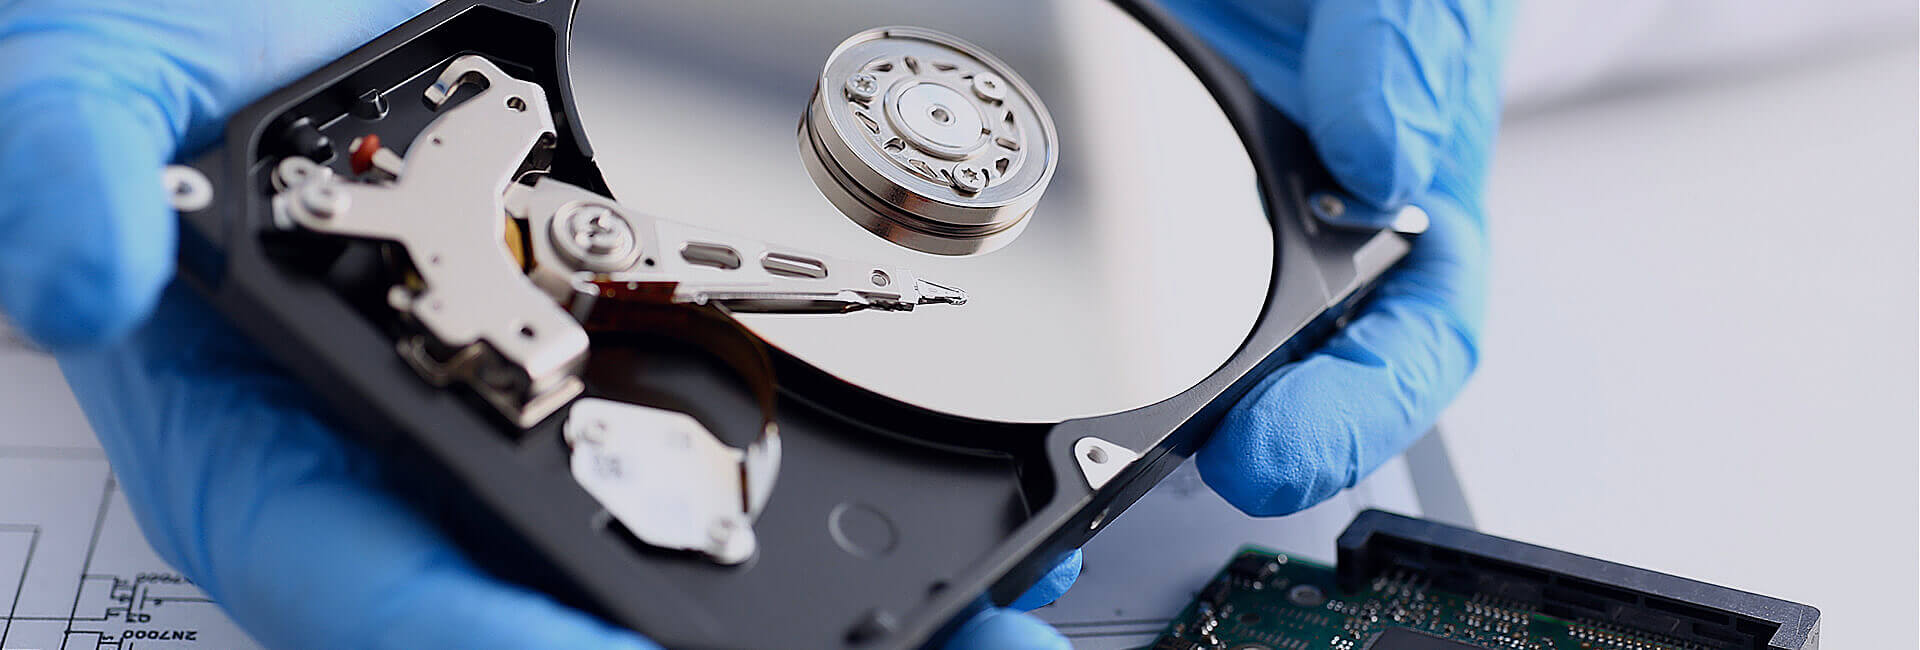 hard drive ssd data recovery